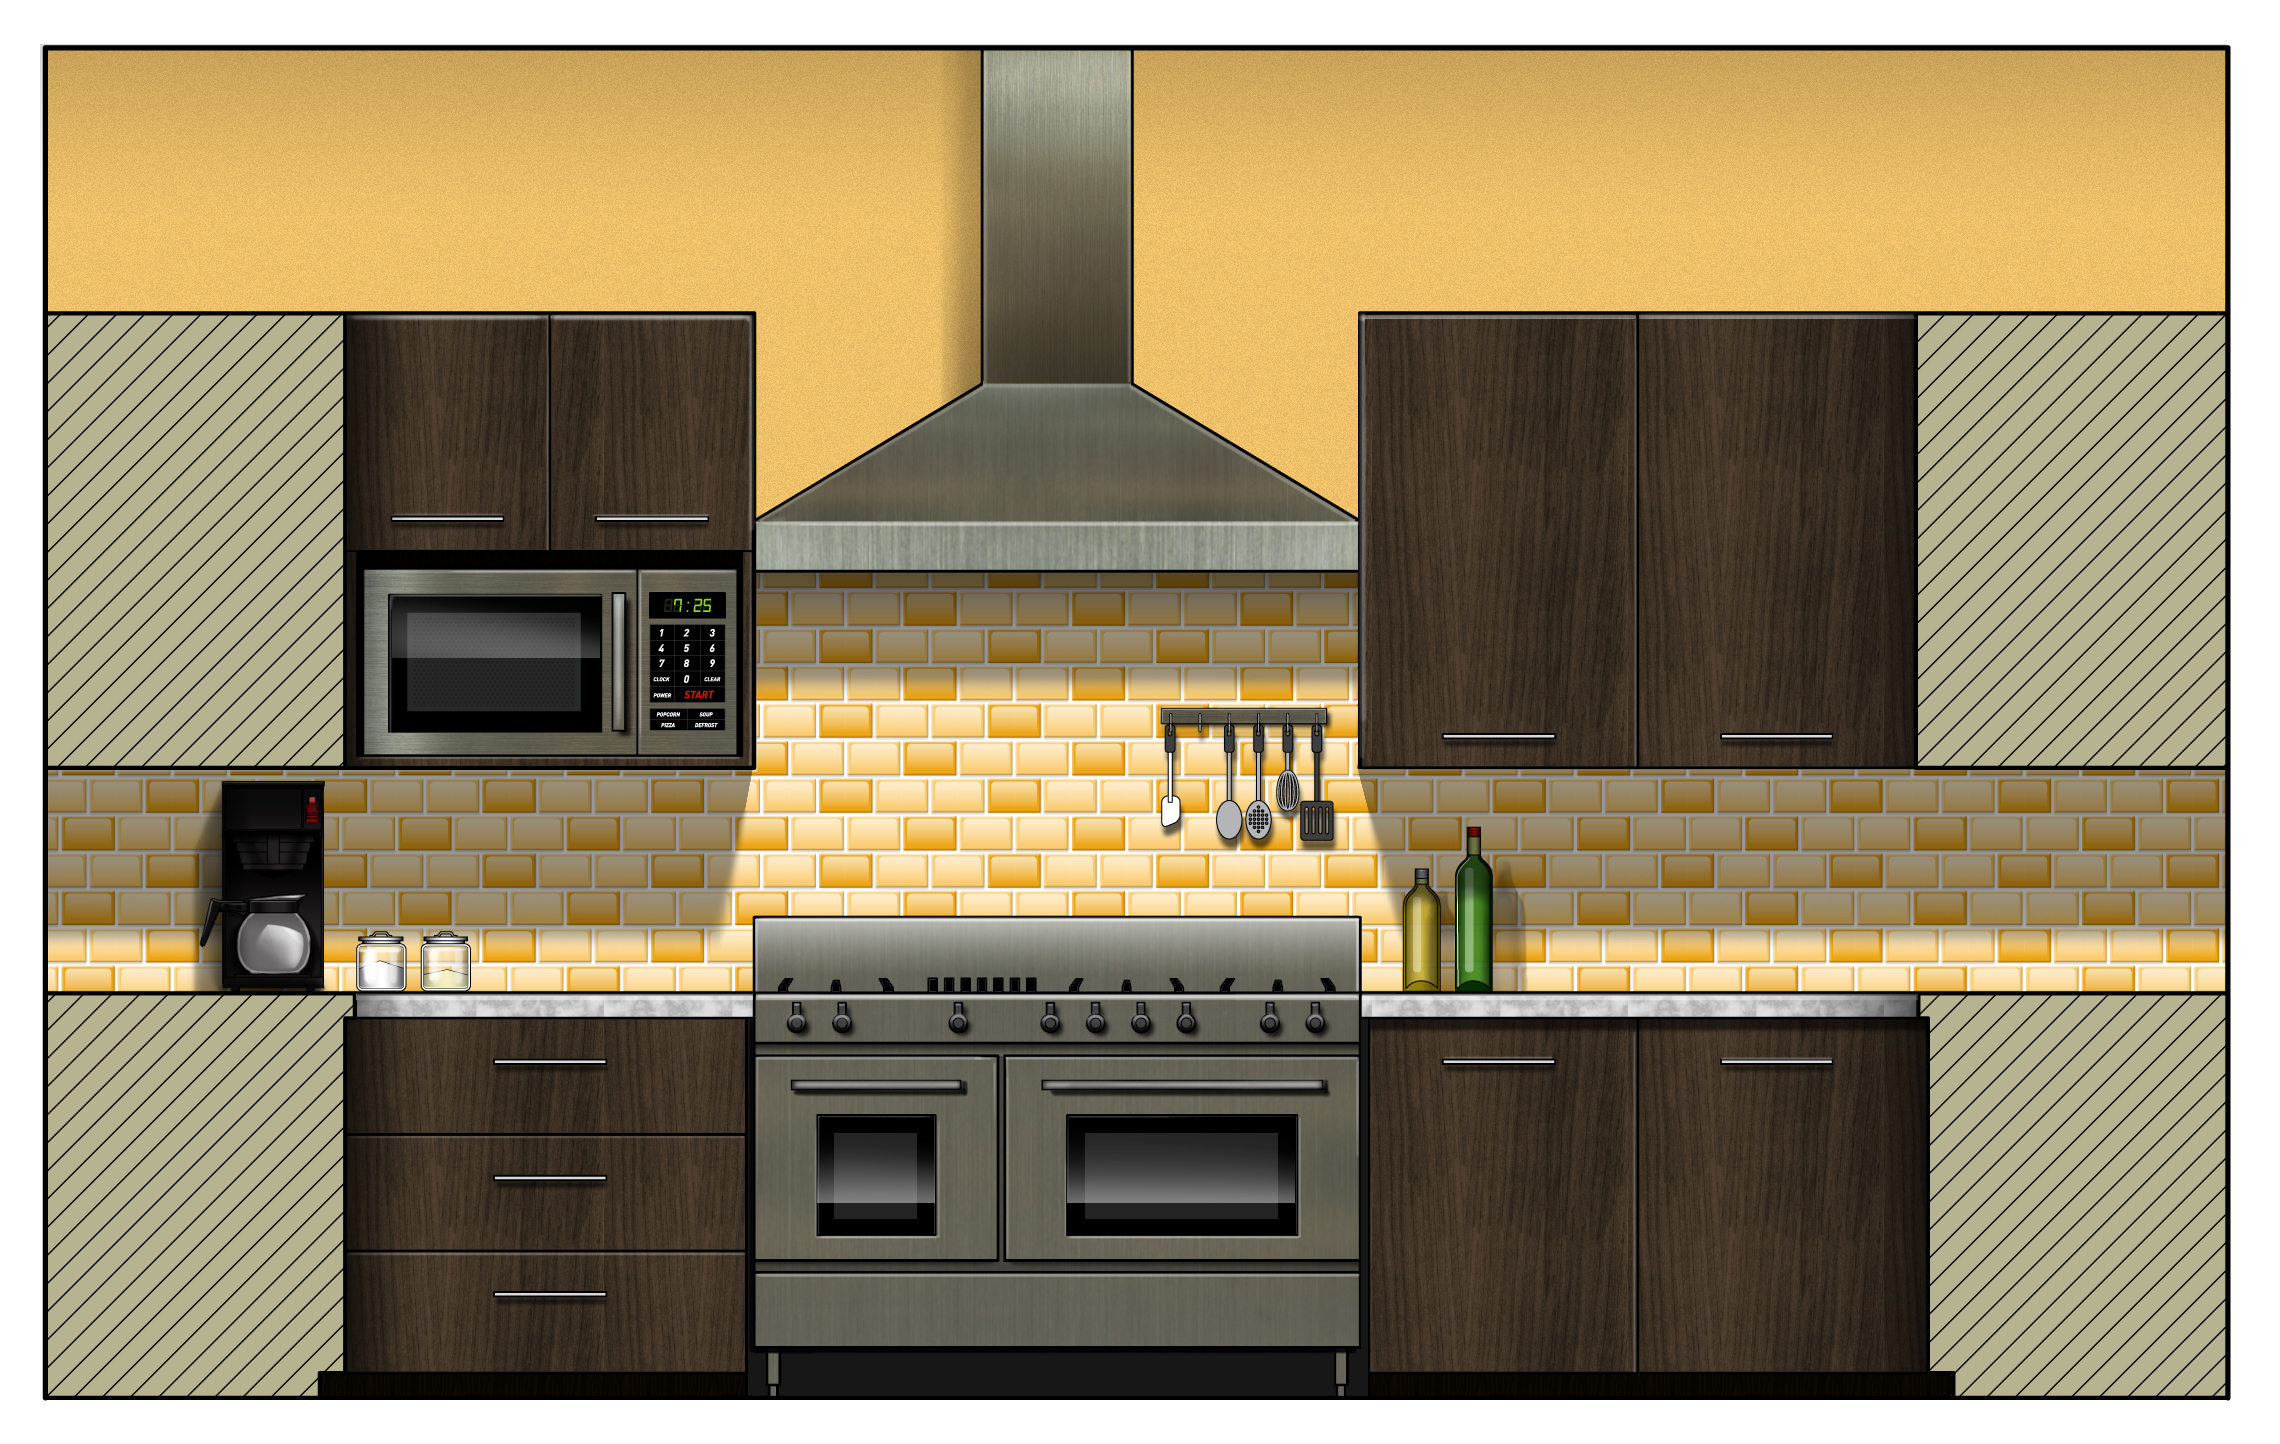 suzy kloner design kitchen before and after design designed by kc